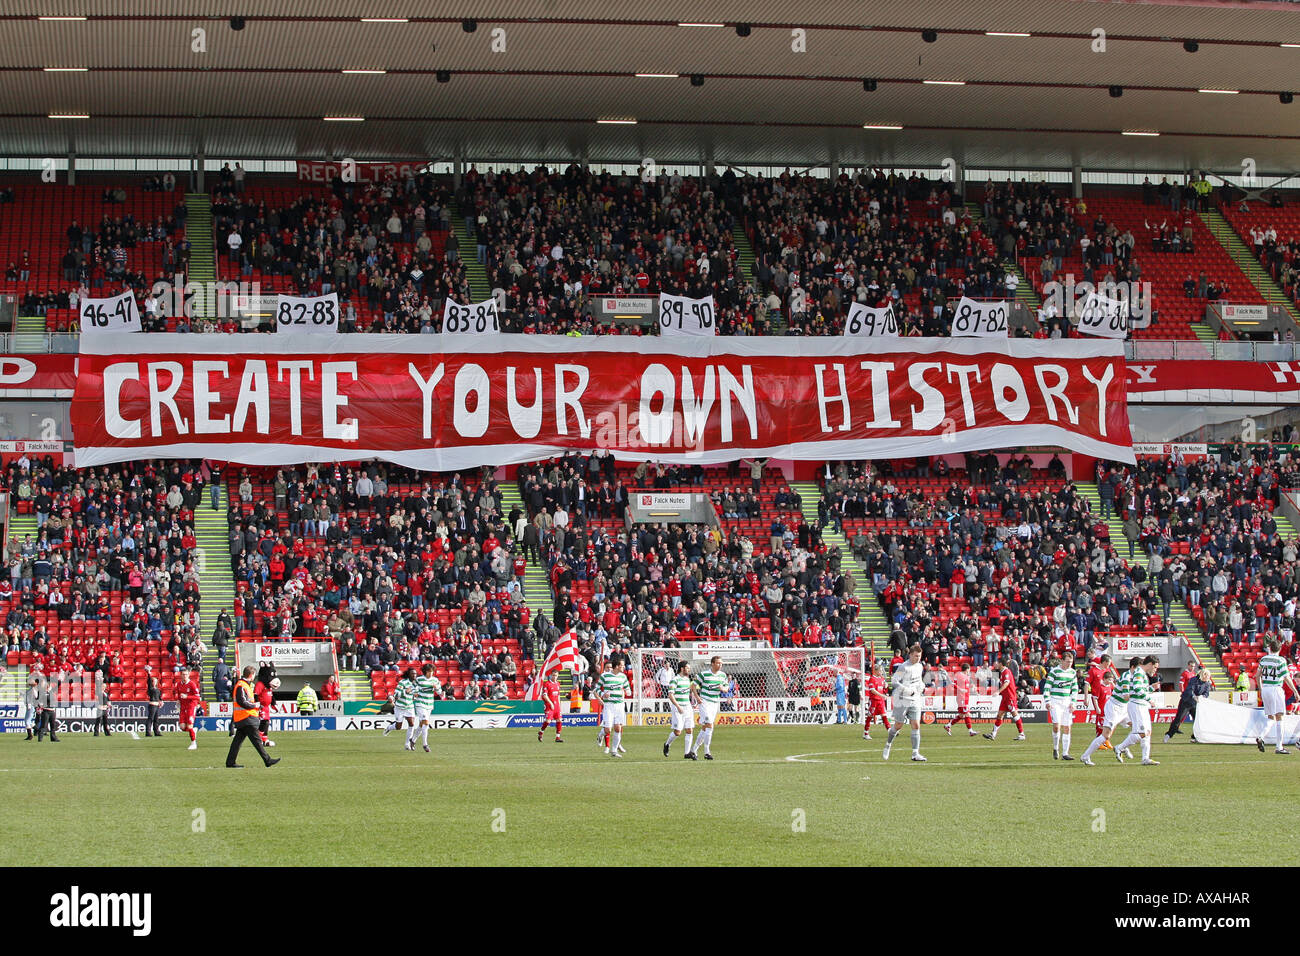 2356bcc6cc Huge banner in the Richard Donald stand Aberdeen Football Club Pittodrie  Stadium before a match with